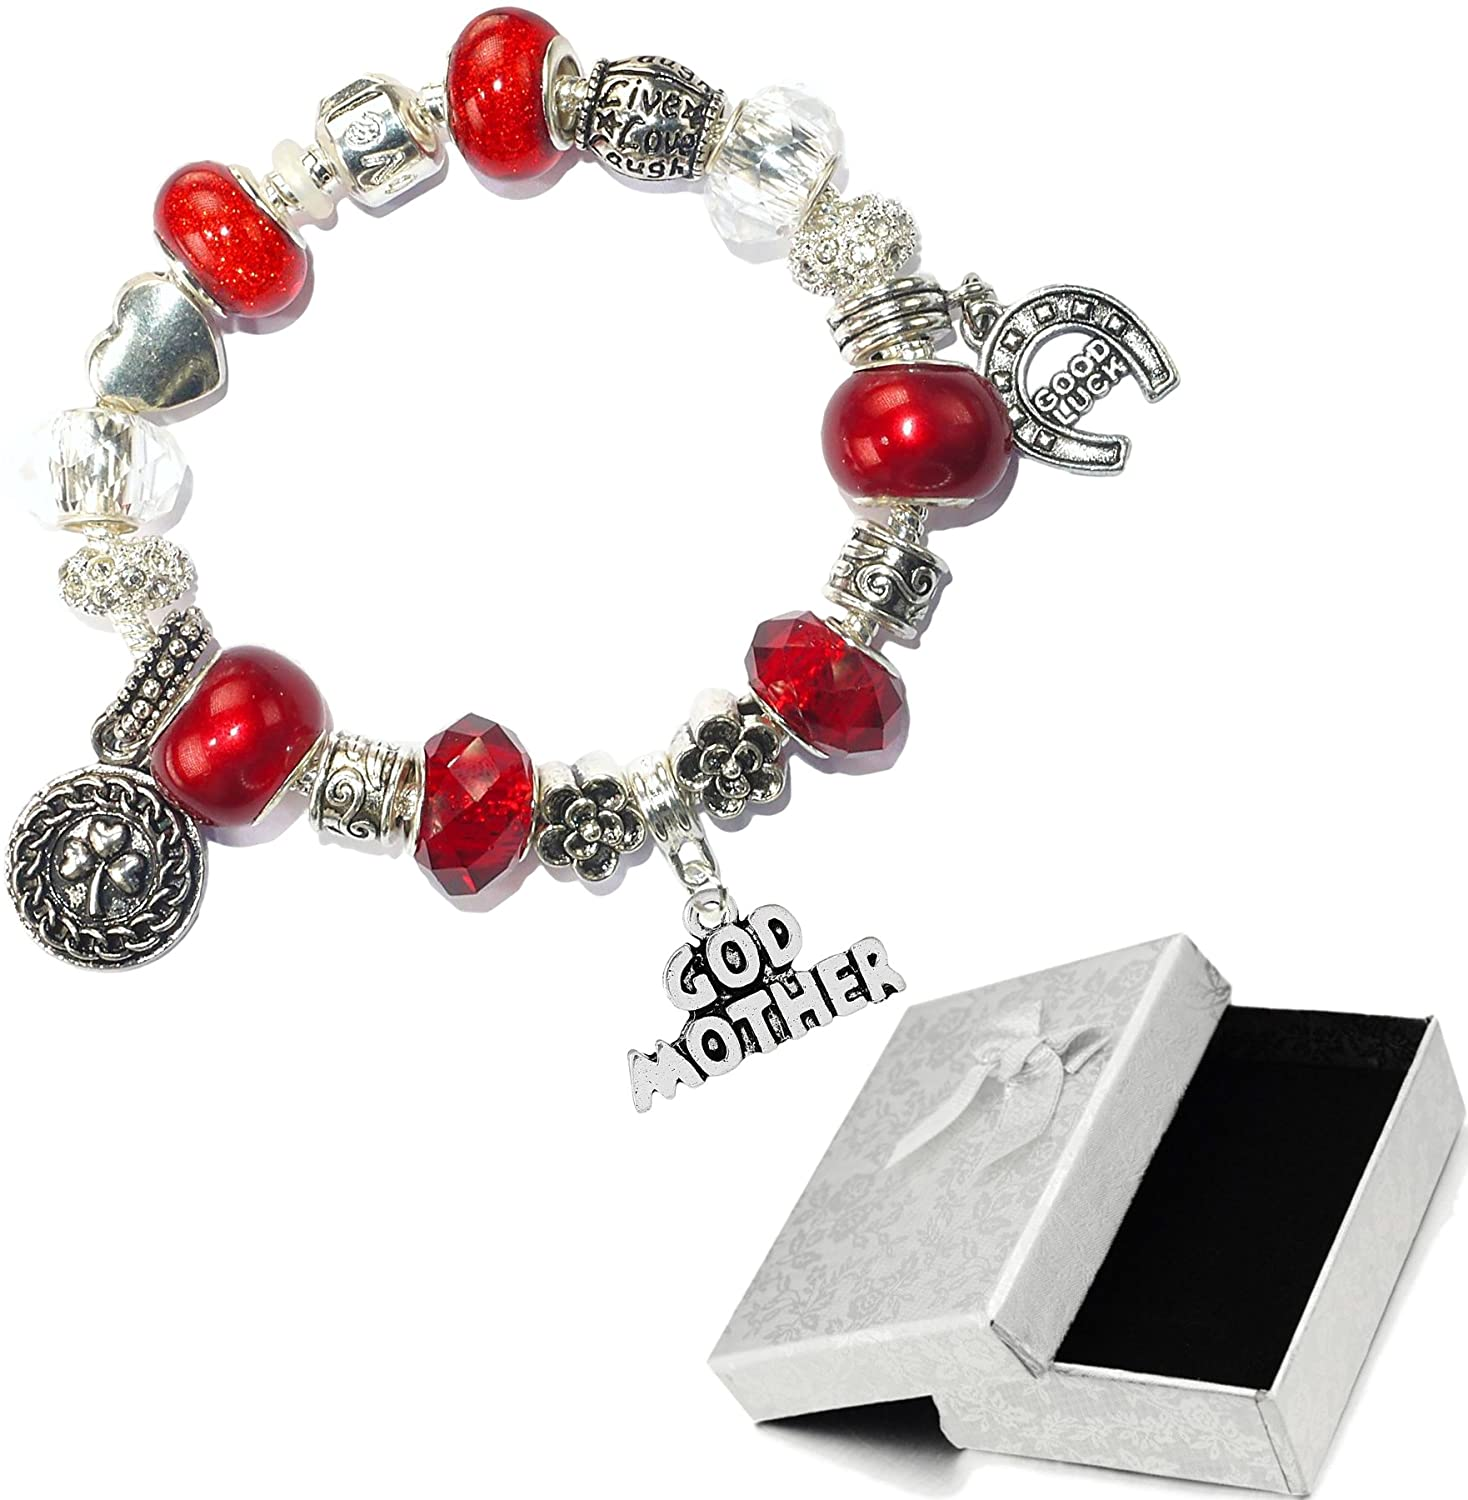 Charm Buddy Special Godmother Red Silver Crystal Good Luck Pandora Style Bracelet With Charms Gift Box